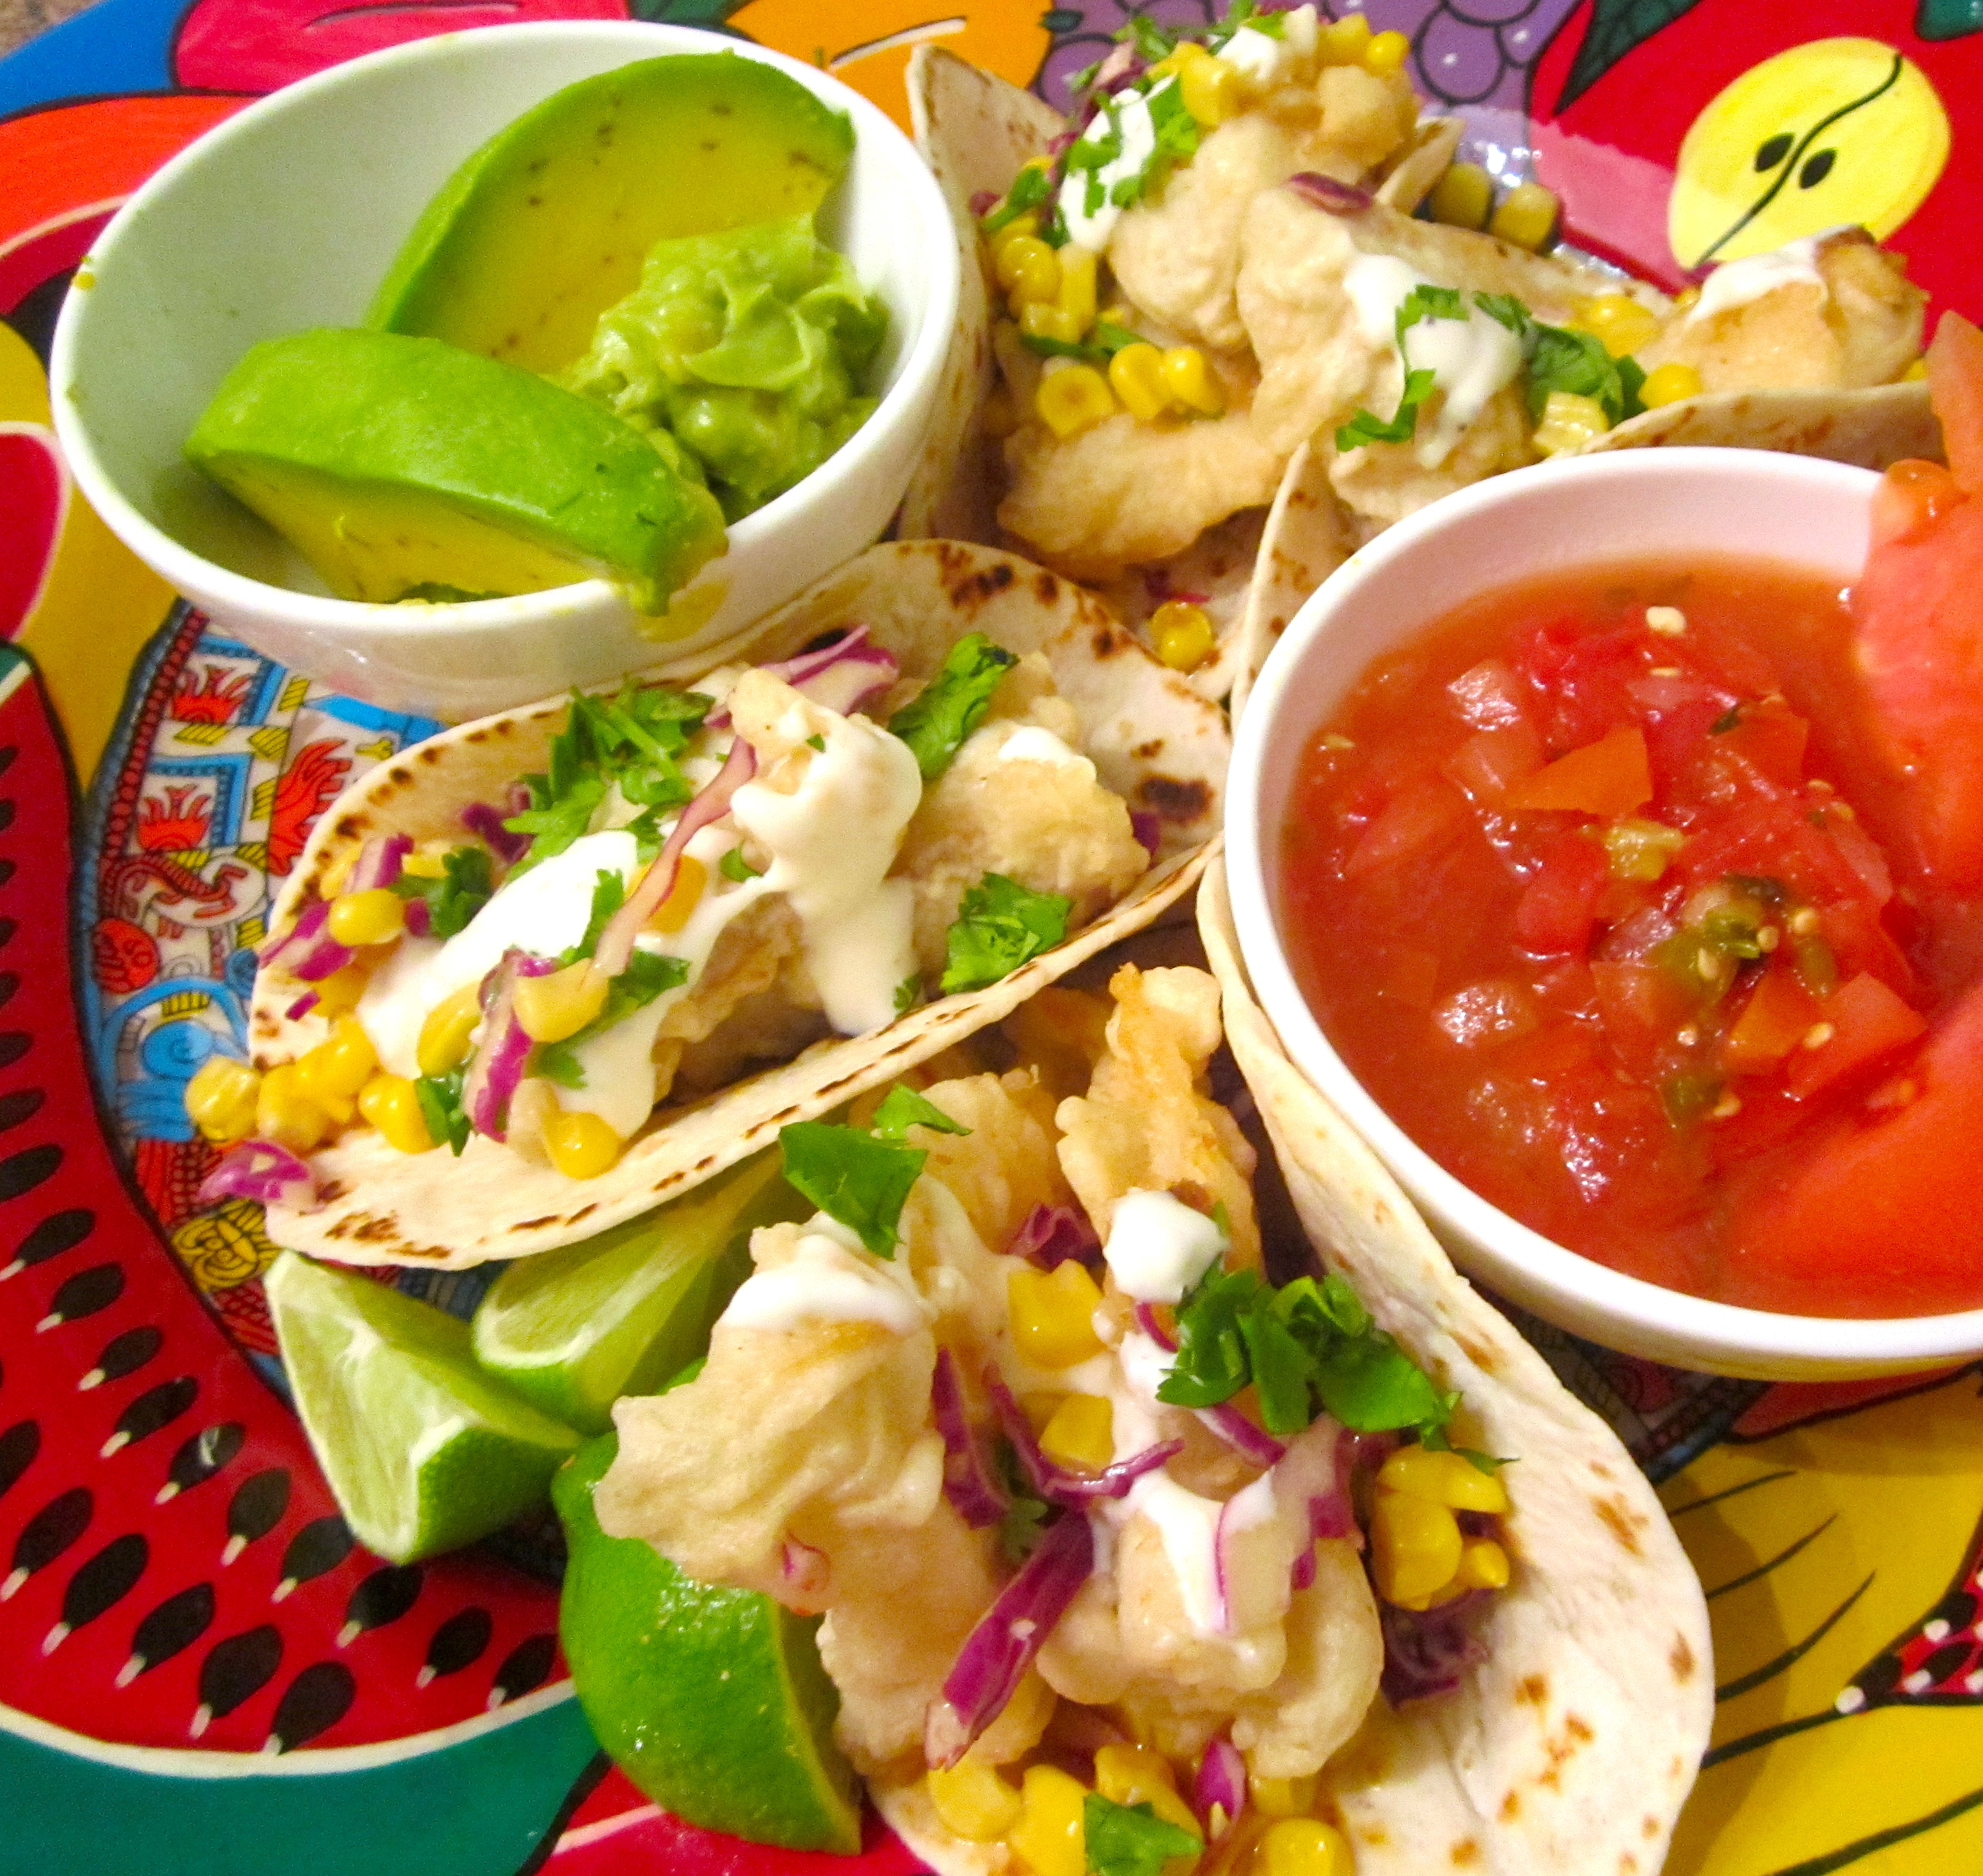 Best fish taco chefsopinion for Good fish for fish tacos